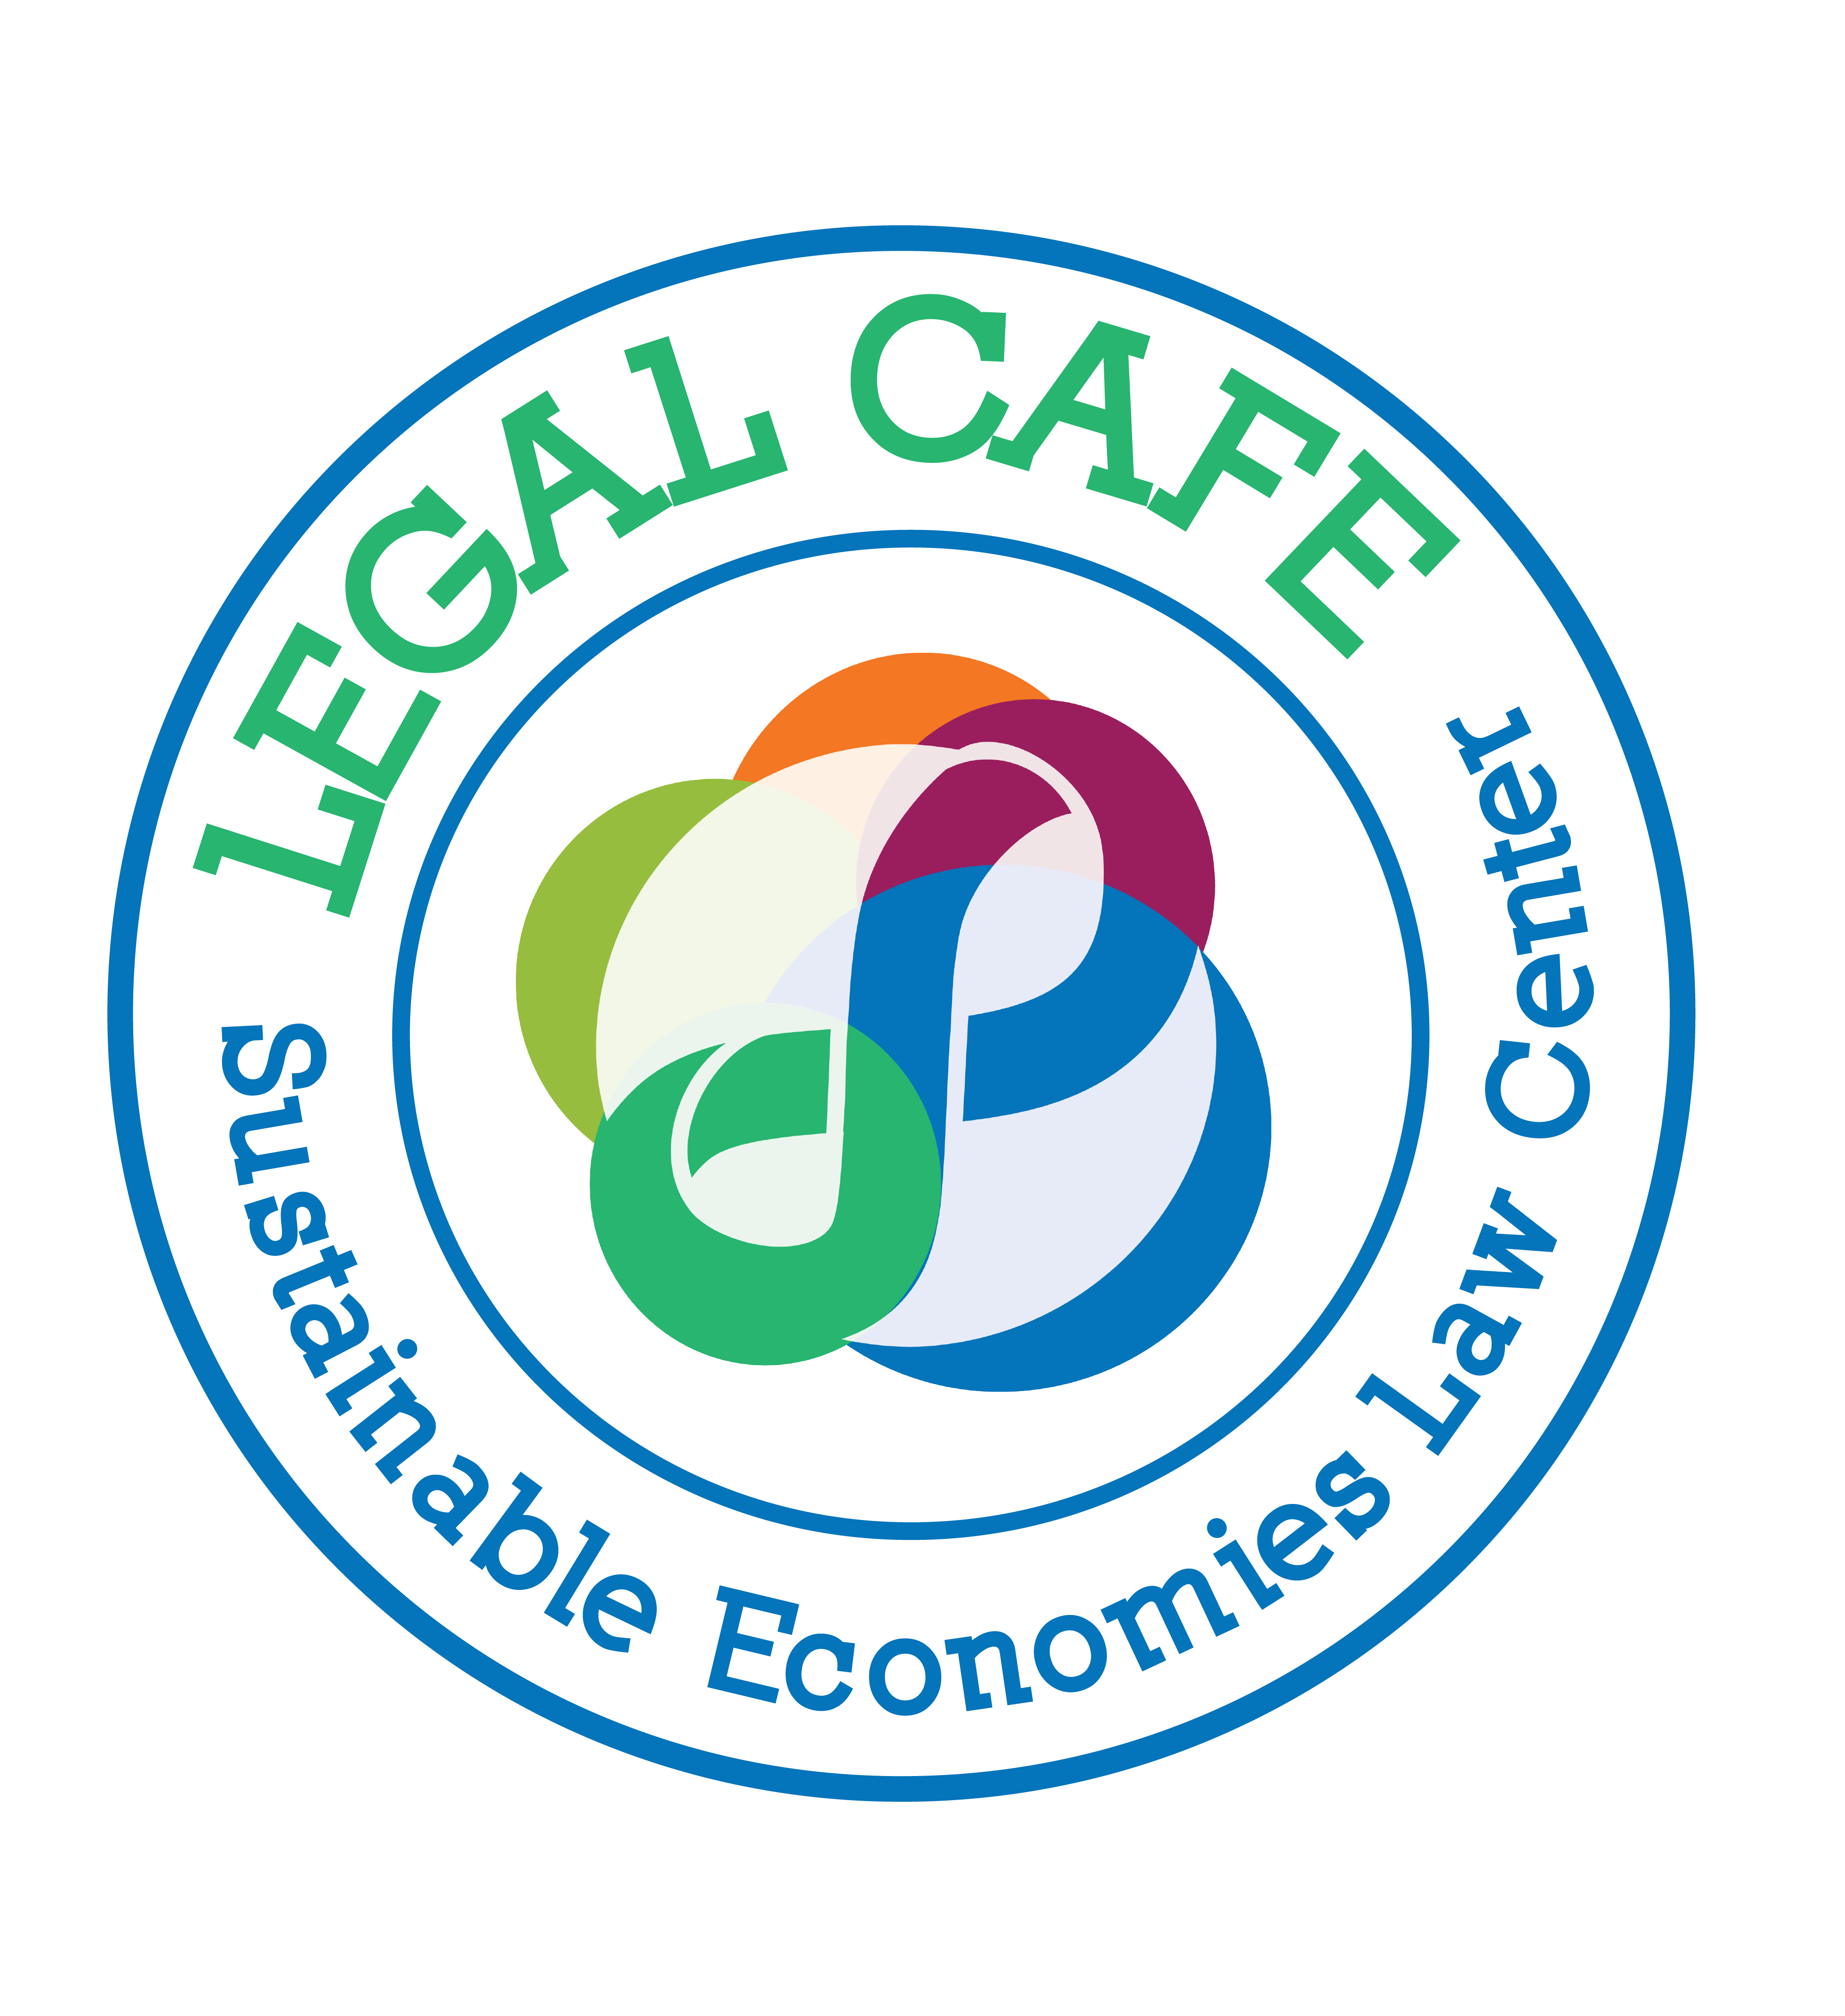 Legal_Cafe_Logo2.png